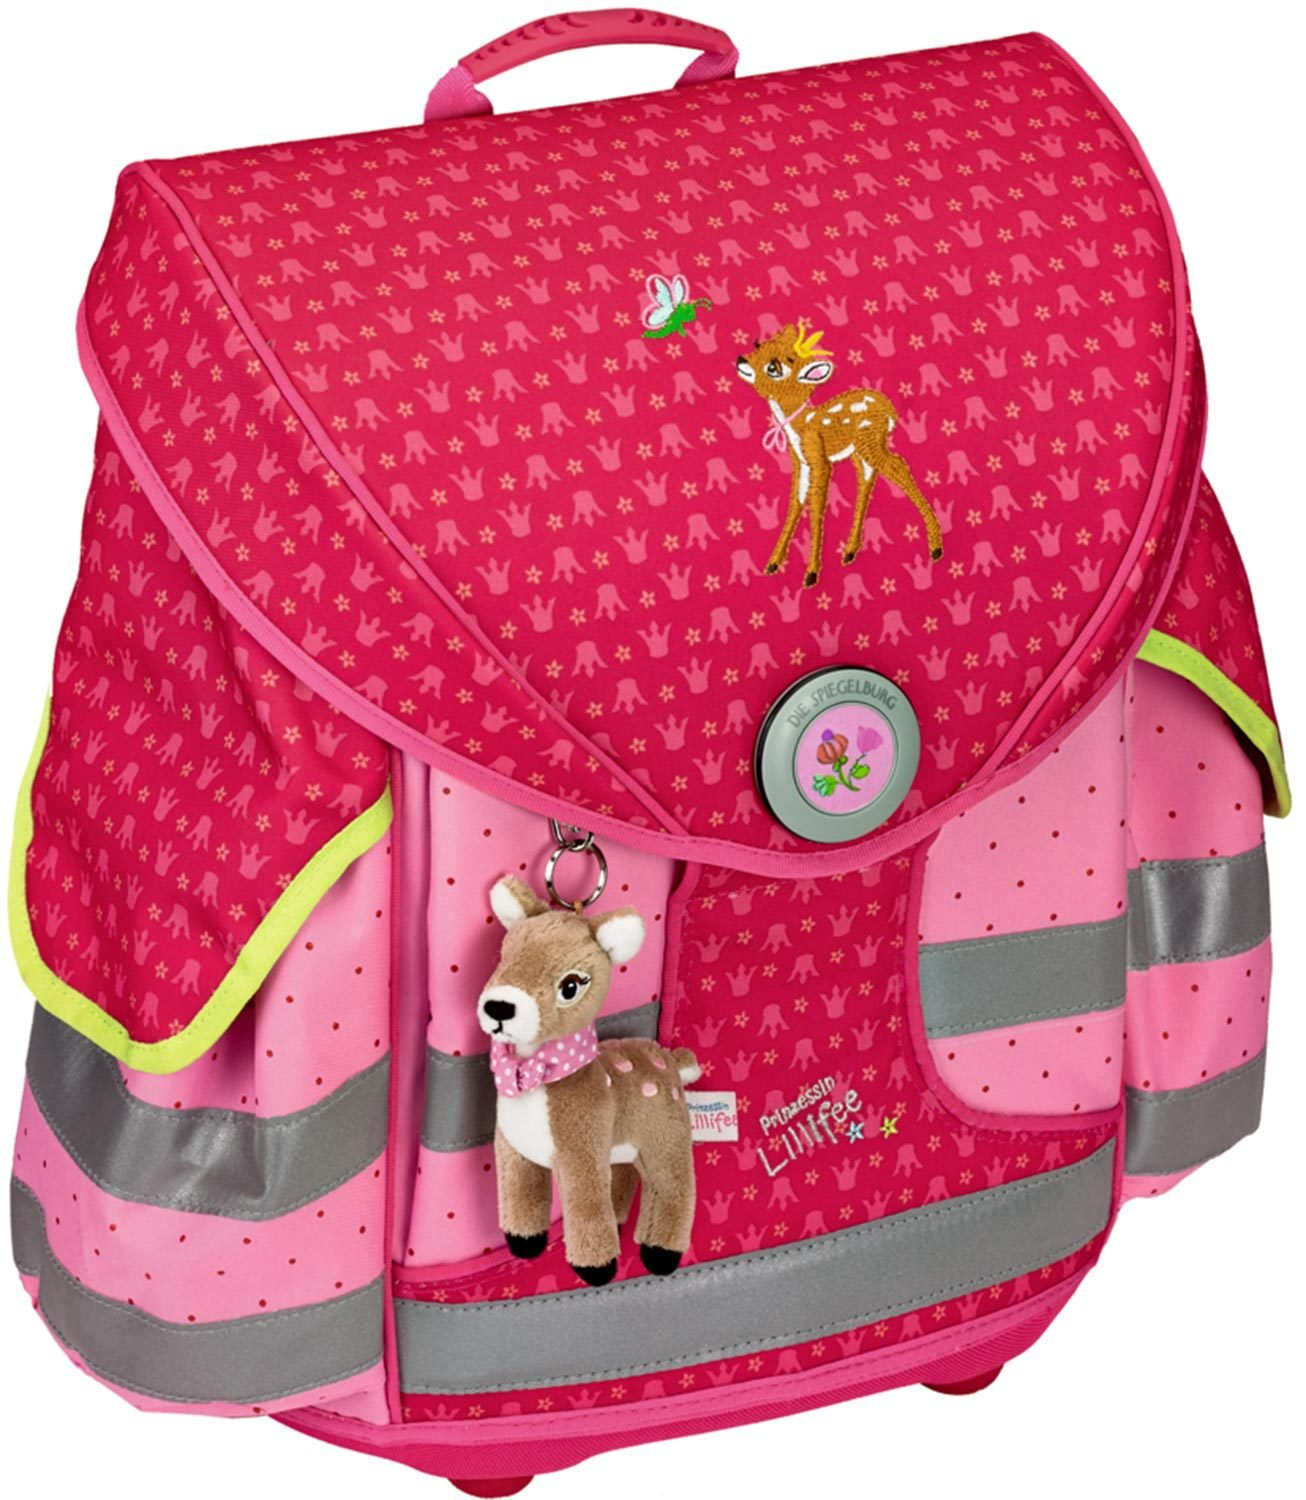 Princess lillifee coloring pages - Princess Lillifee Fairy Ball Ergo Style Plus Schoolbag Set Model 11688 Amazon Co Uk Toys Games